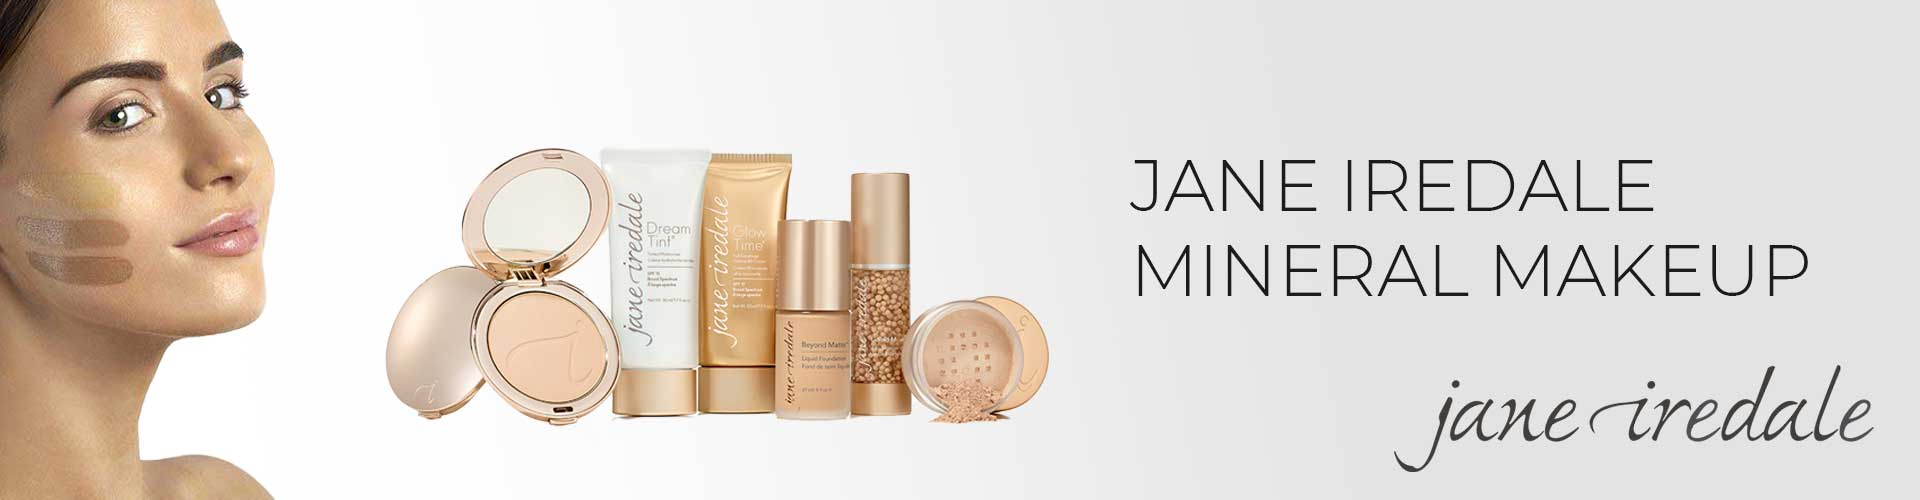 Jane Iredale Mineral Makeup Product Banner